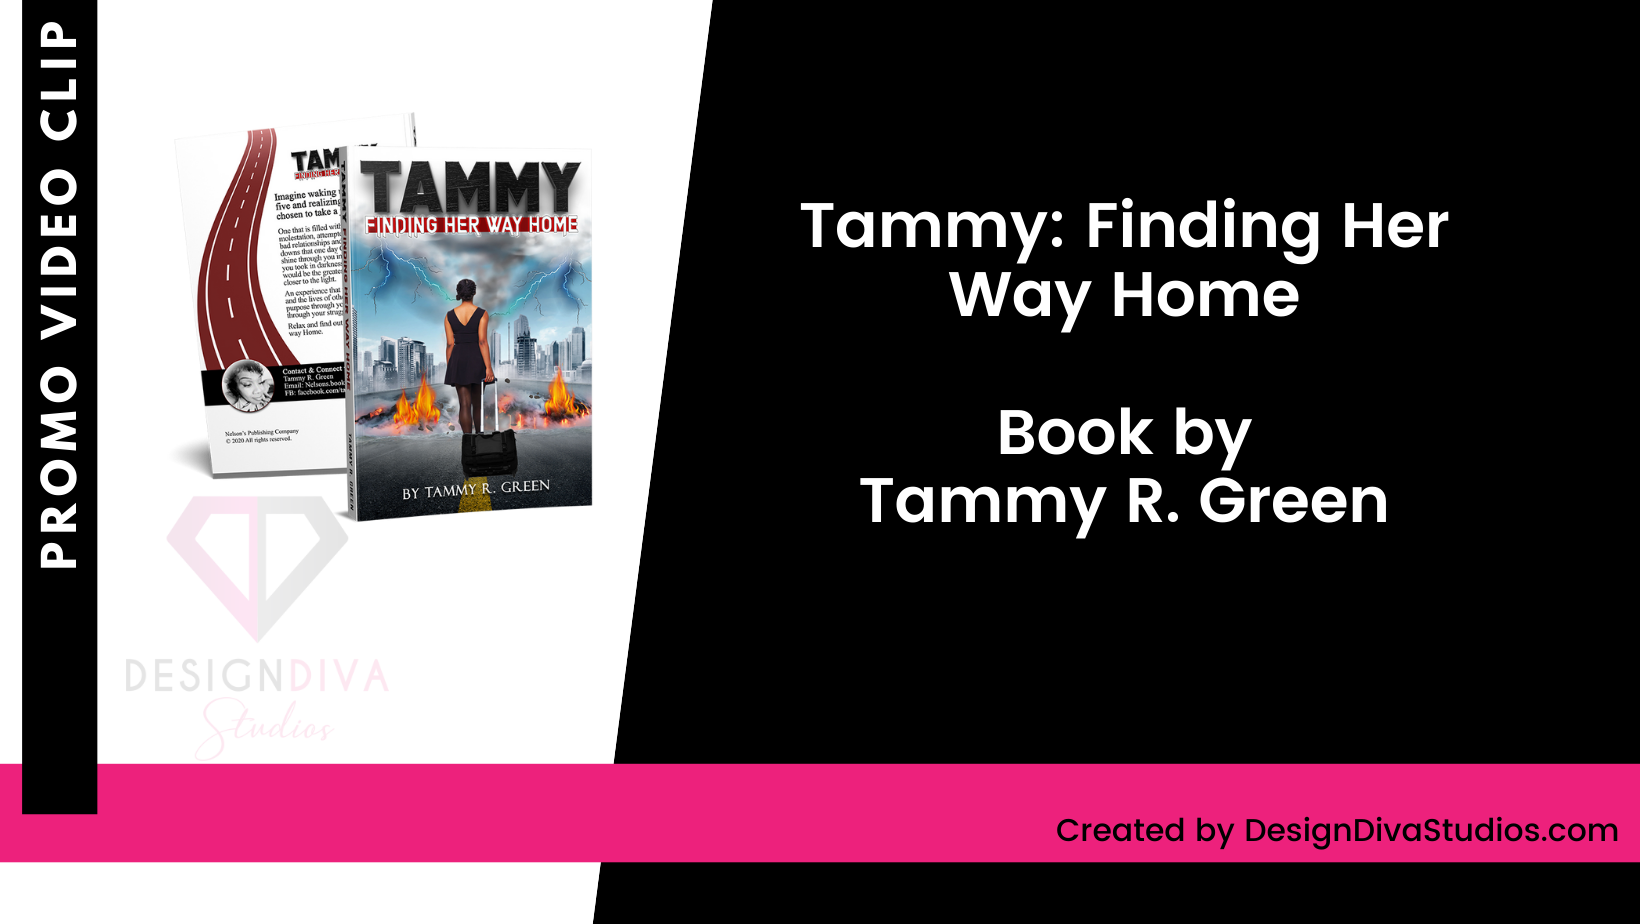 Promo Video Clip Cover - Tammy Finding Her Way Home